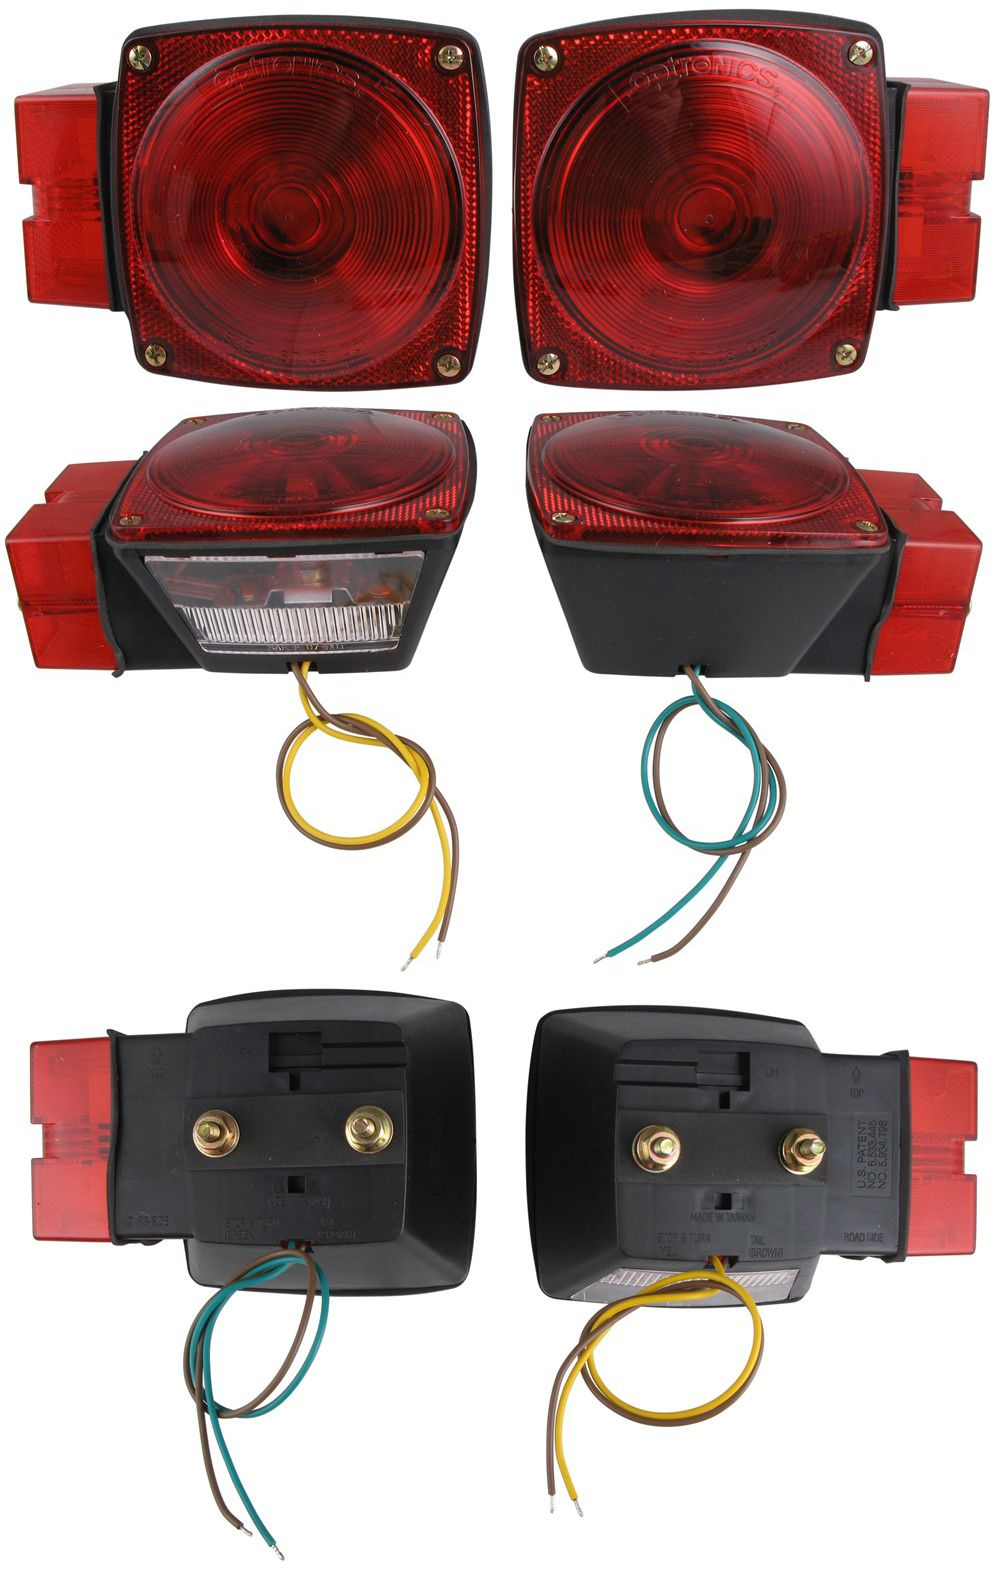 66c0b07f05445edbd78d704f7f53706c red, submersible, trailer light kit with stud mount lights trailer lights wiring harness kit at readyjetset.co